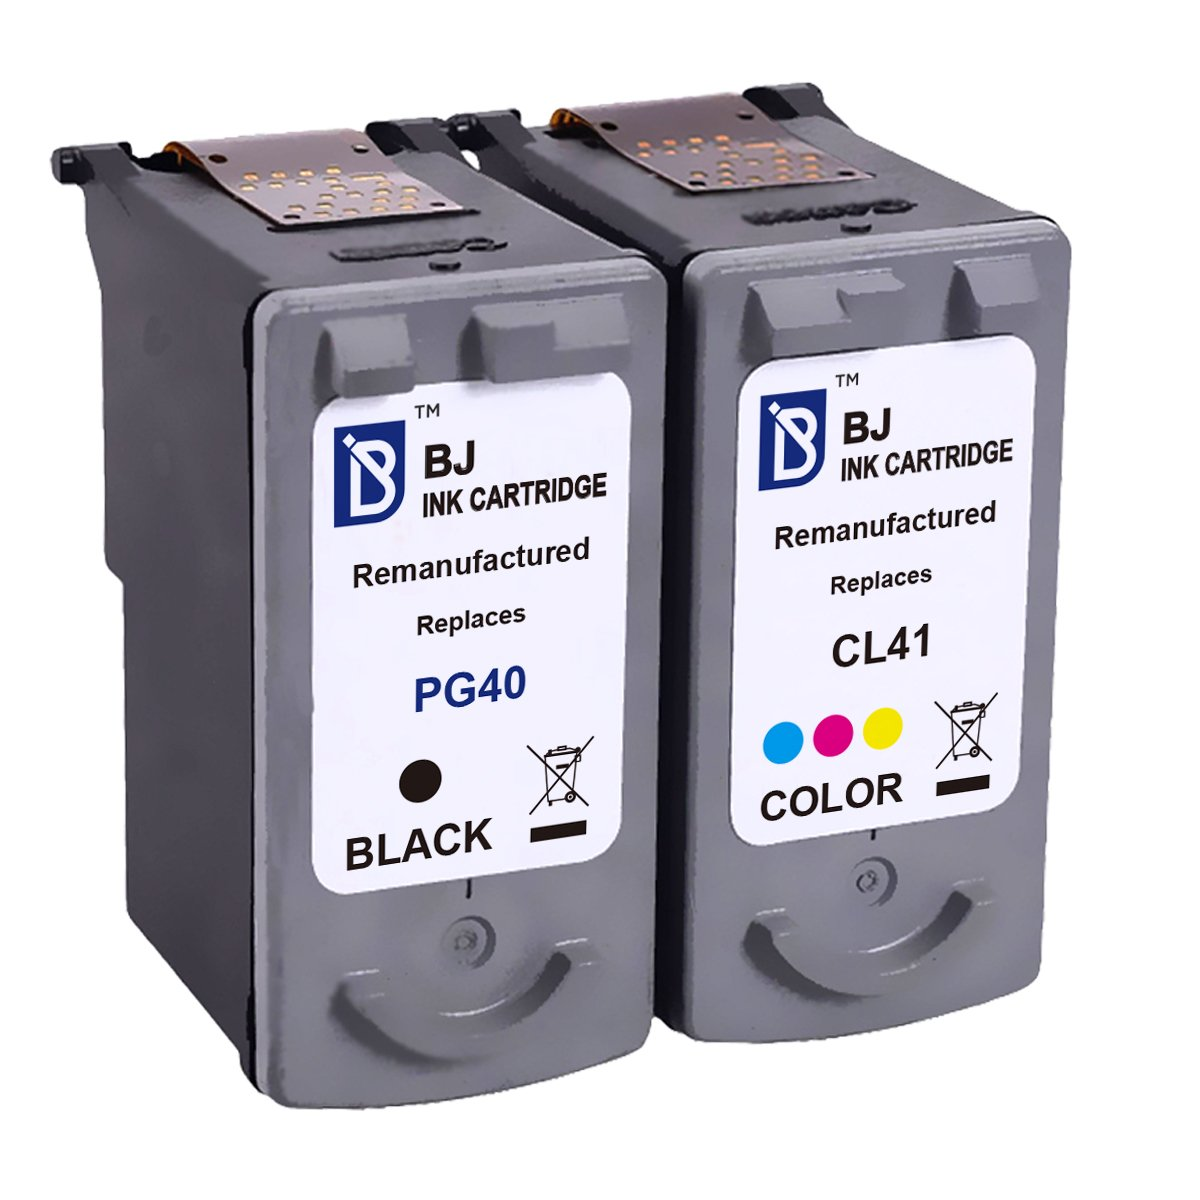 Amazon.com: BJ Remanufactured Ink Cartridge 2 Pack Replacement for Canon  PG-40 CL-41 0615B002 0617B002 for Canon PIXMA MP470 MX310 MP210 MP460  iP1600 MP160 ...